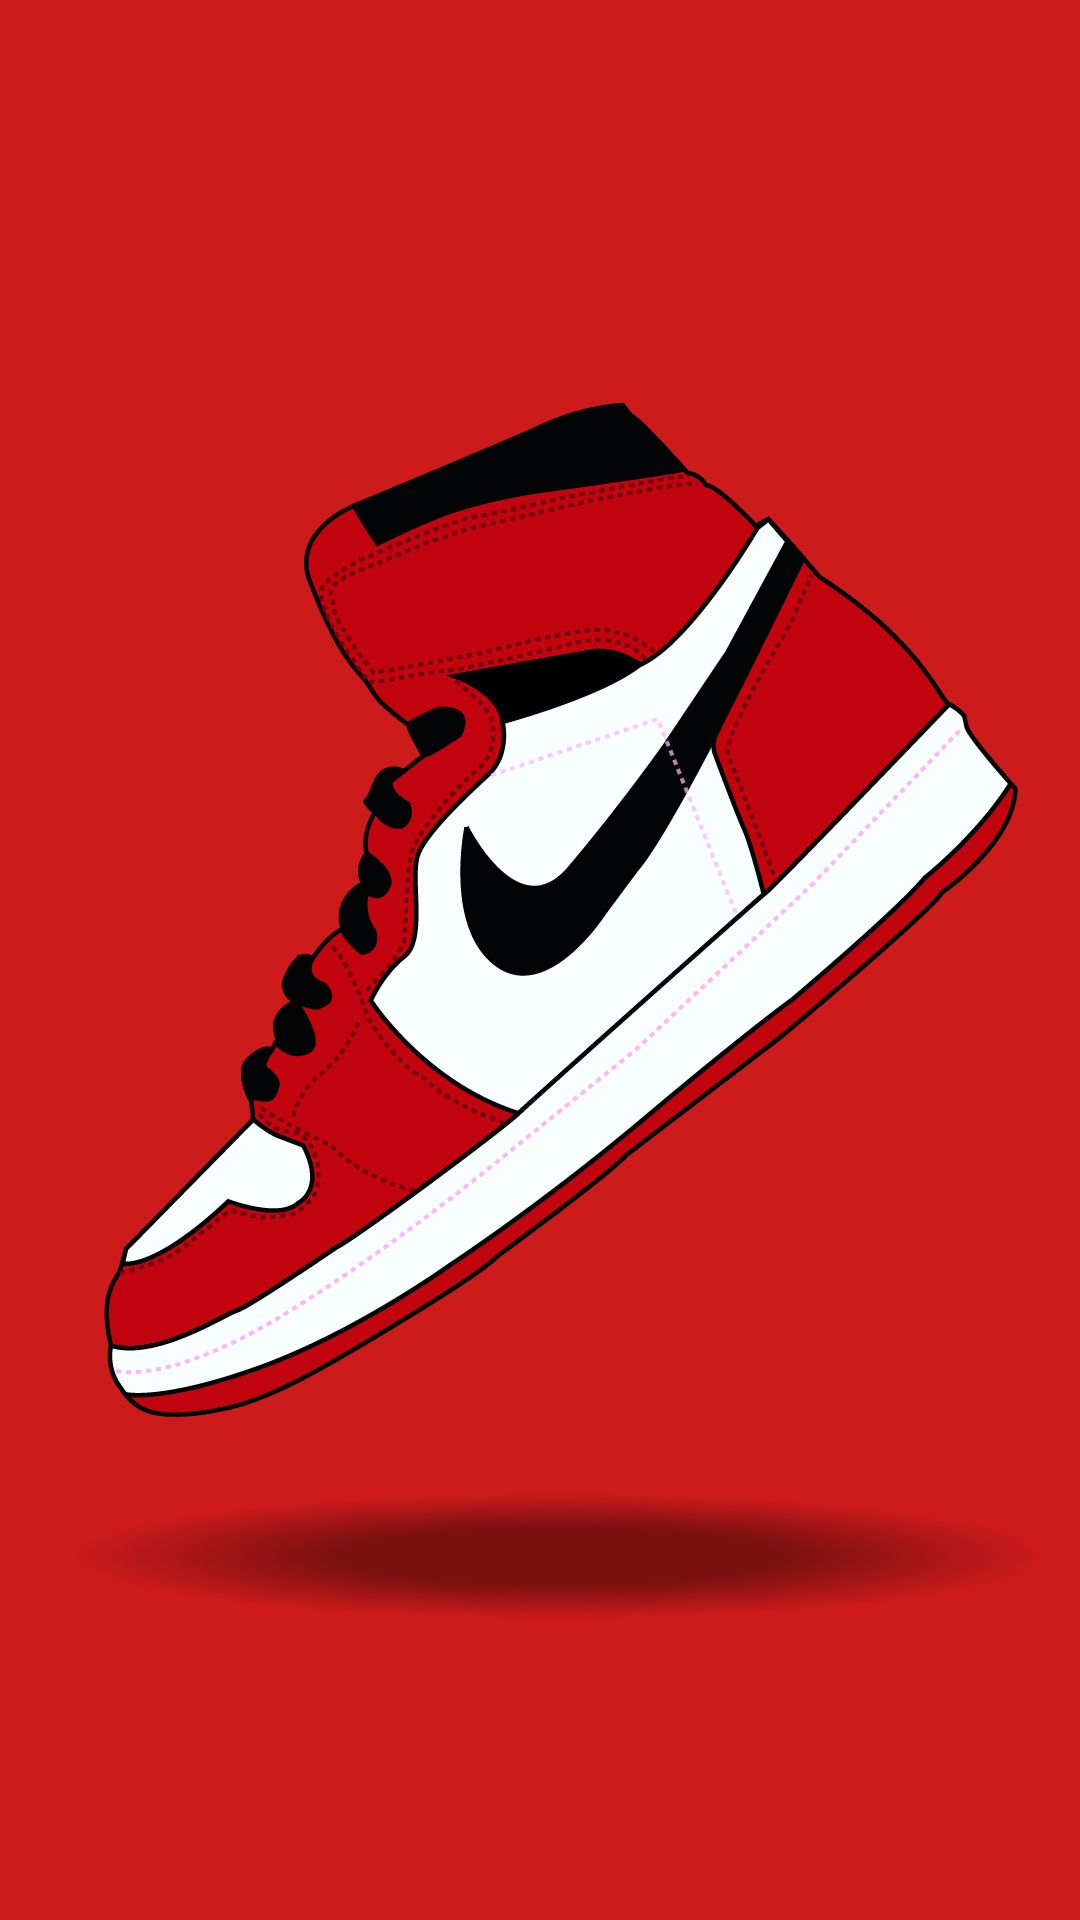 Air Jordan 1 Wallpaper Nike Wallpaper Sneakers Wallpaper Shoes Wallpaper